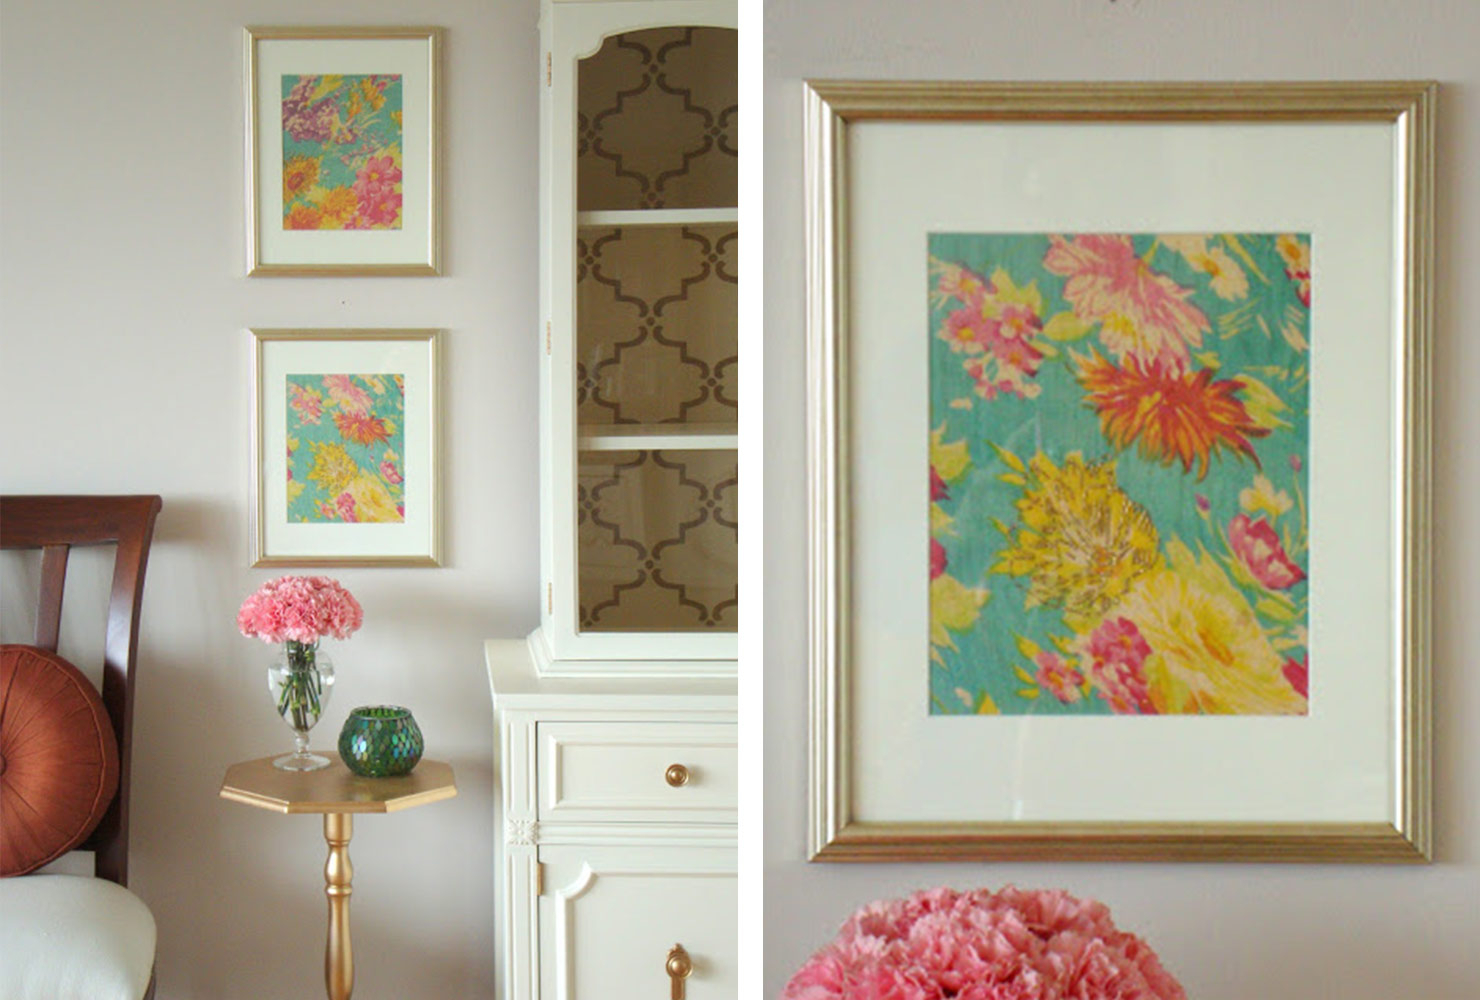 25 Unique Diy Wall Art Ideas (With Printables) | Shutterfly With Regard To Floral Wreath Wood Framed Wall Decor (Gallery 21 of 30)